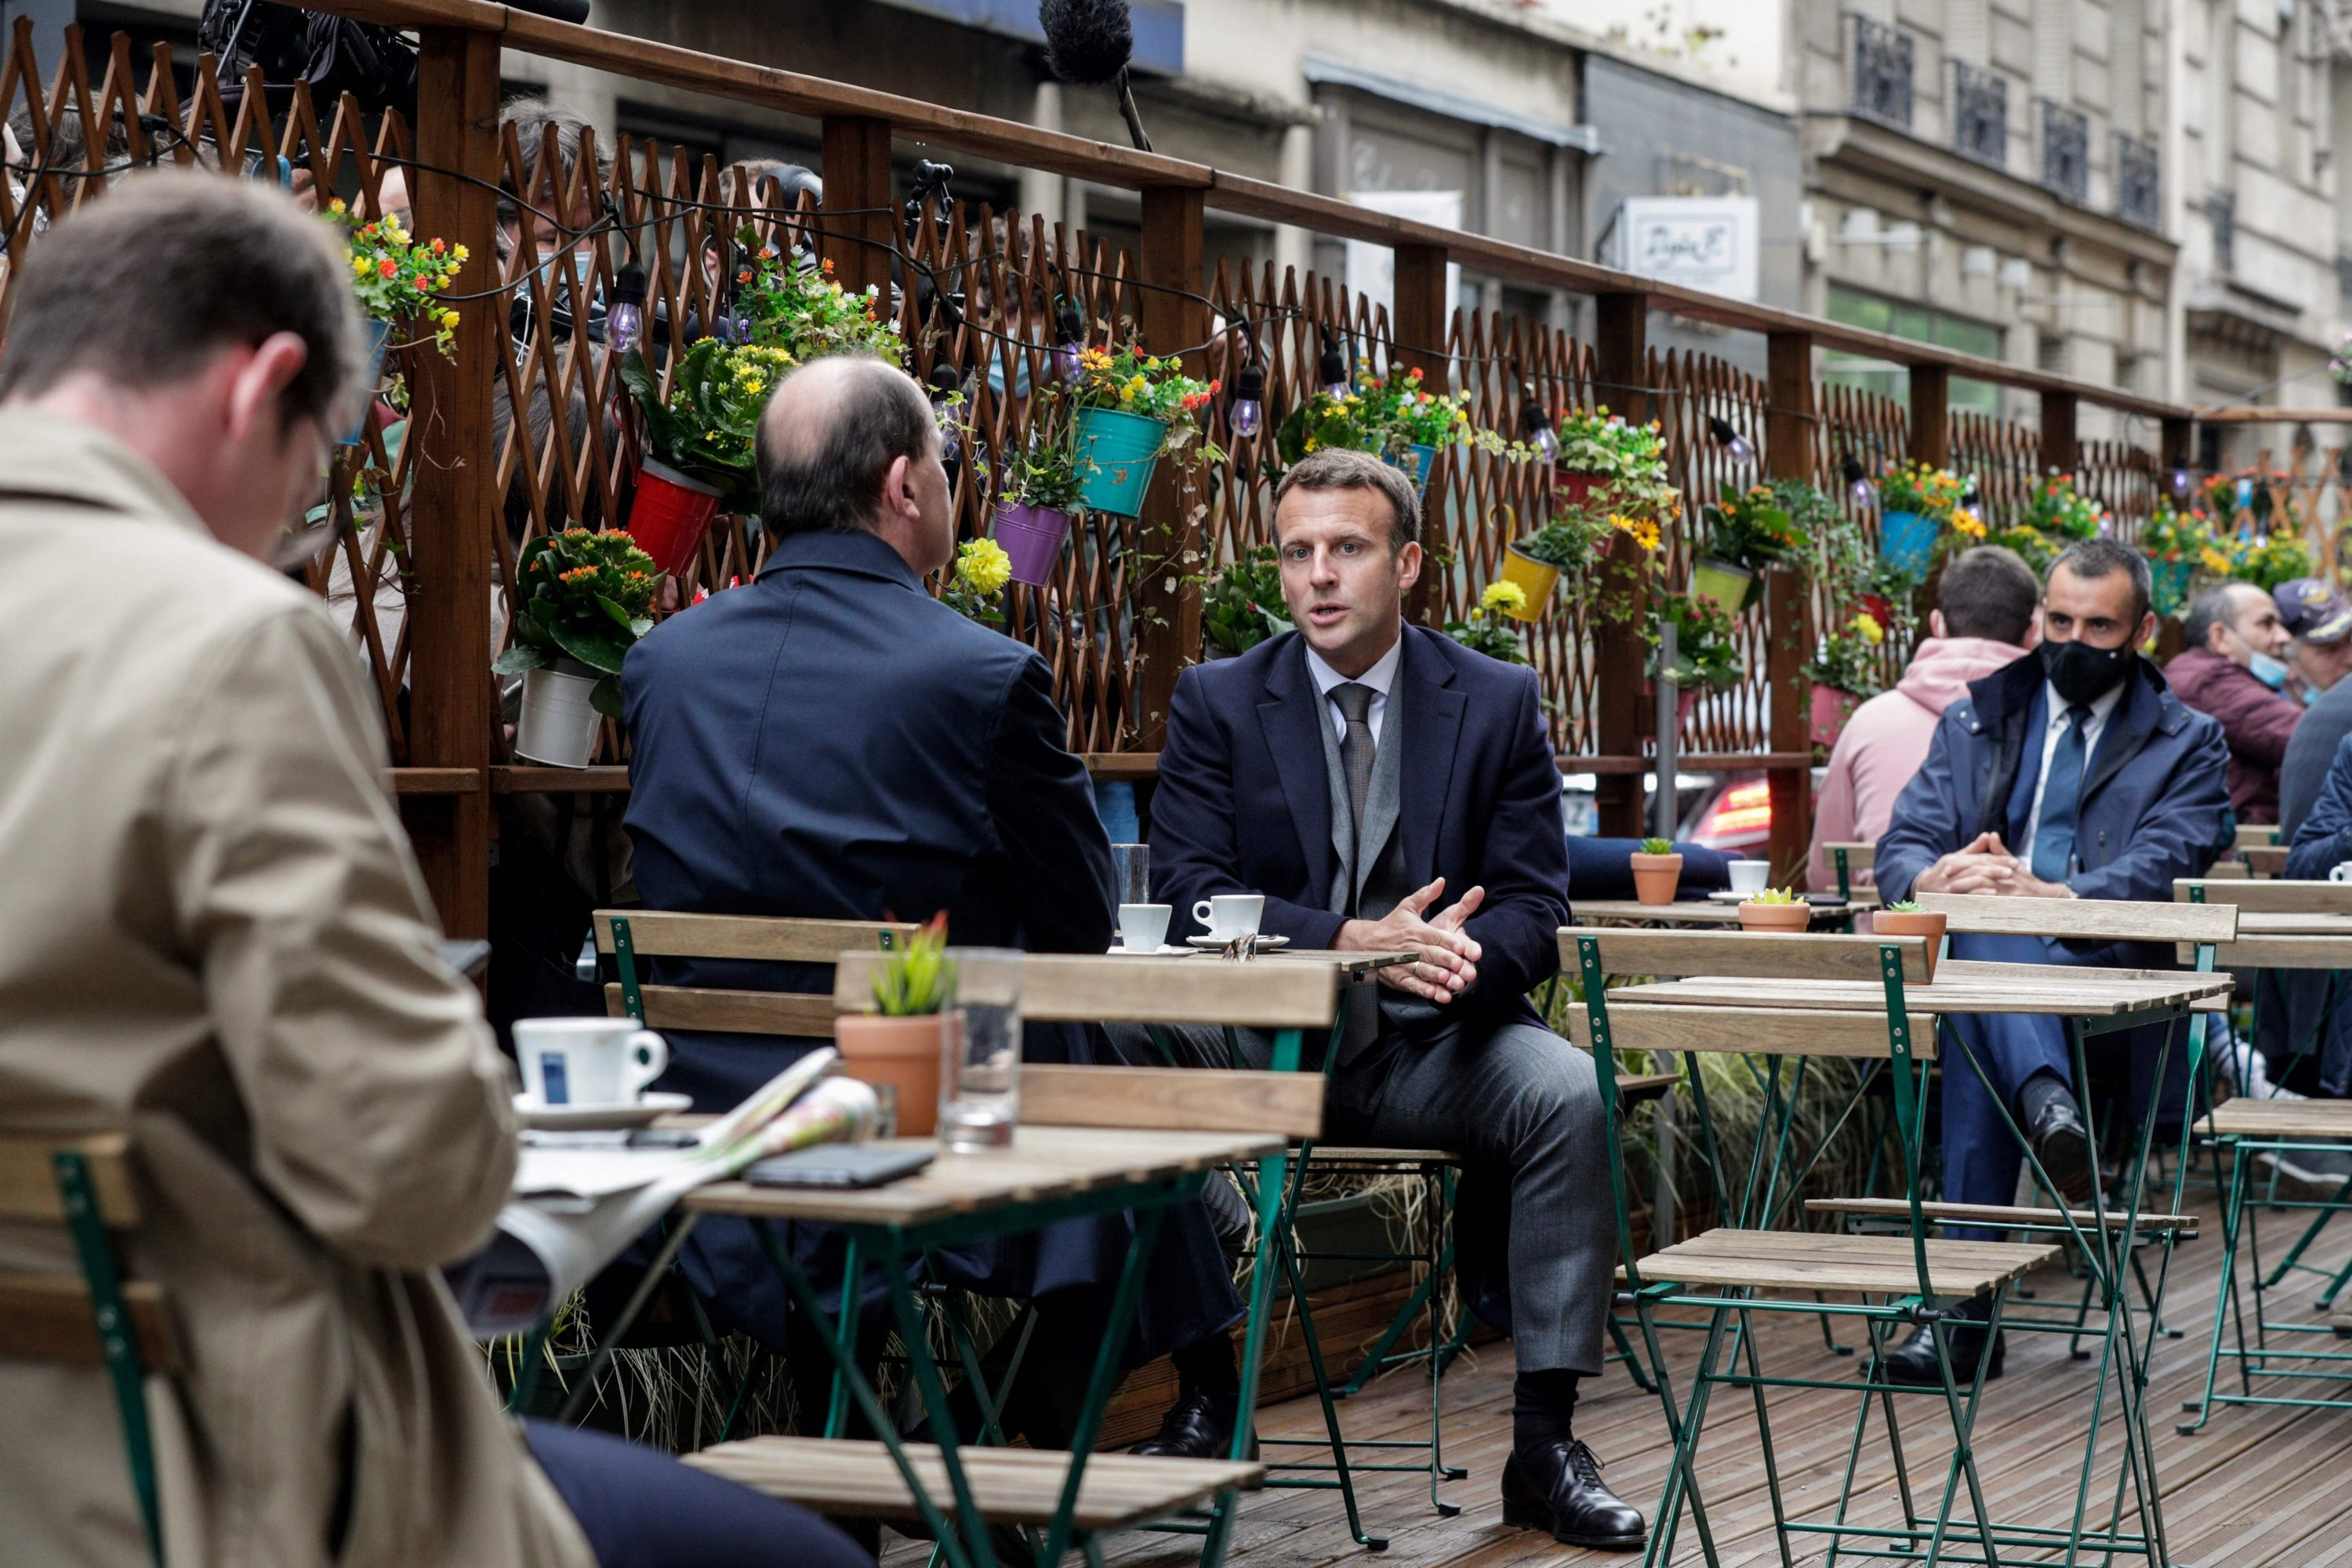 French President Emmanuel Macron (R) and French Prime Minister Jean Castex (L) are having coffees at a cafe terrace in Paris on May 19, 2021. (AFP Photo)